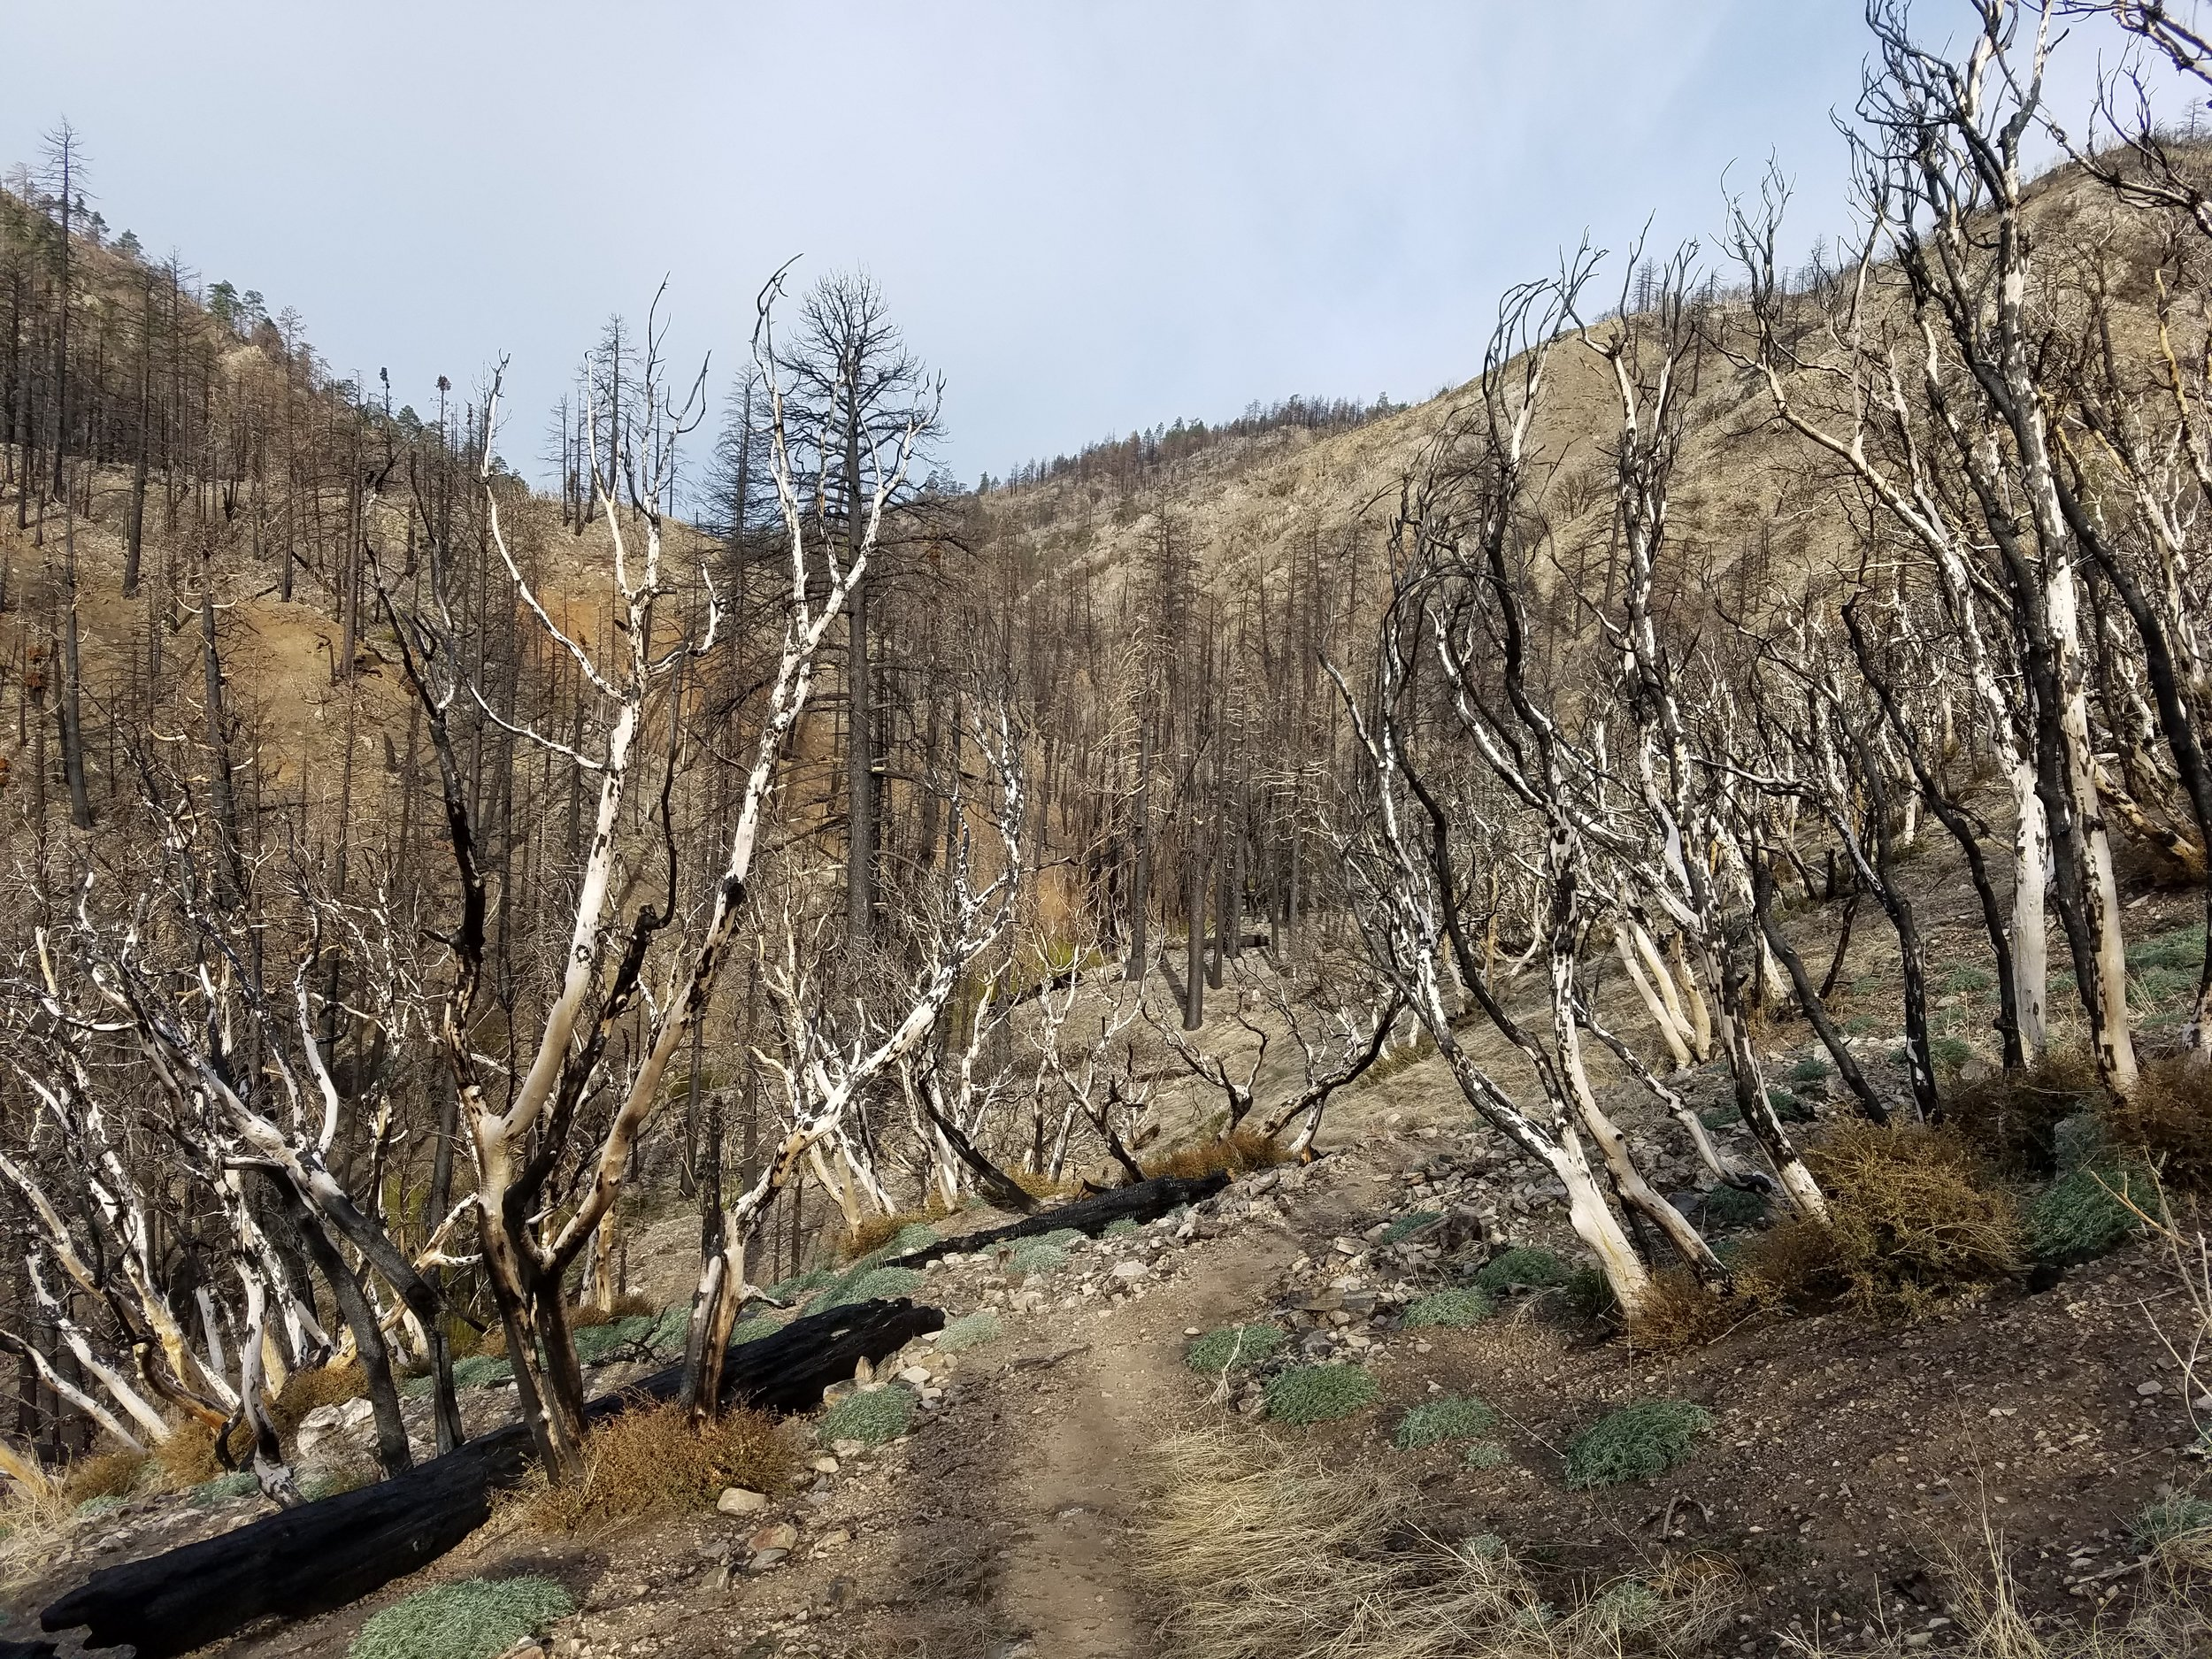 Hiking through the Lake Fire closure, all NOT 16 miles of it.